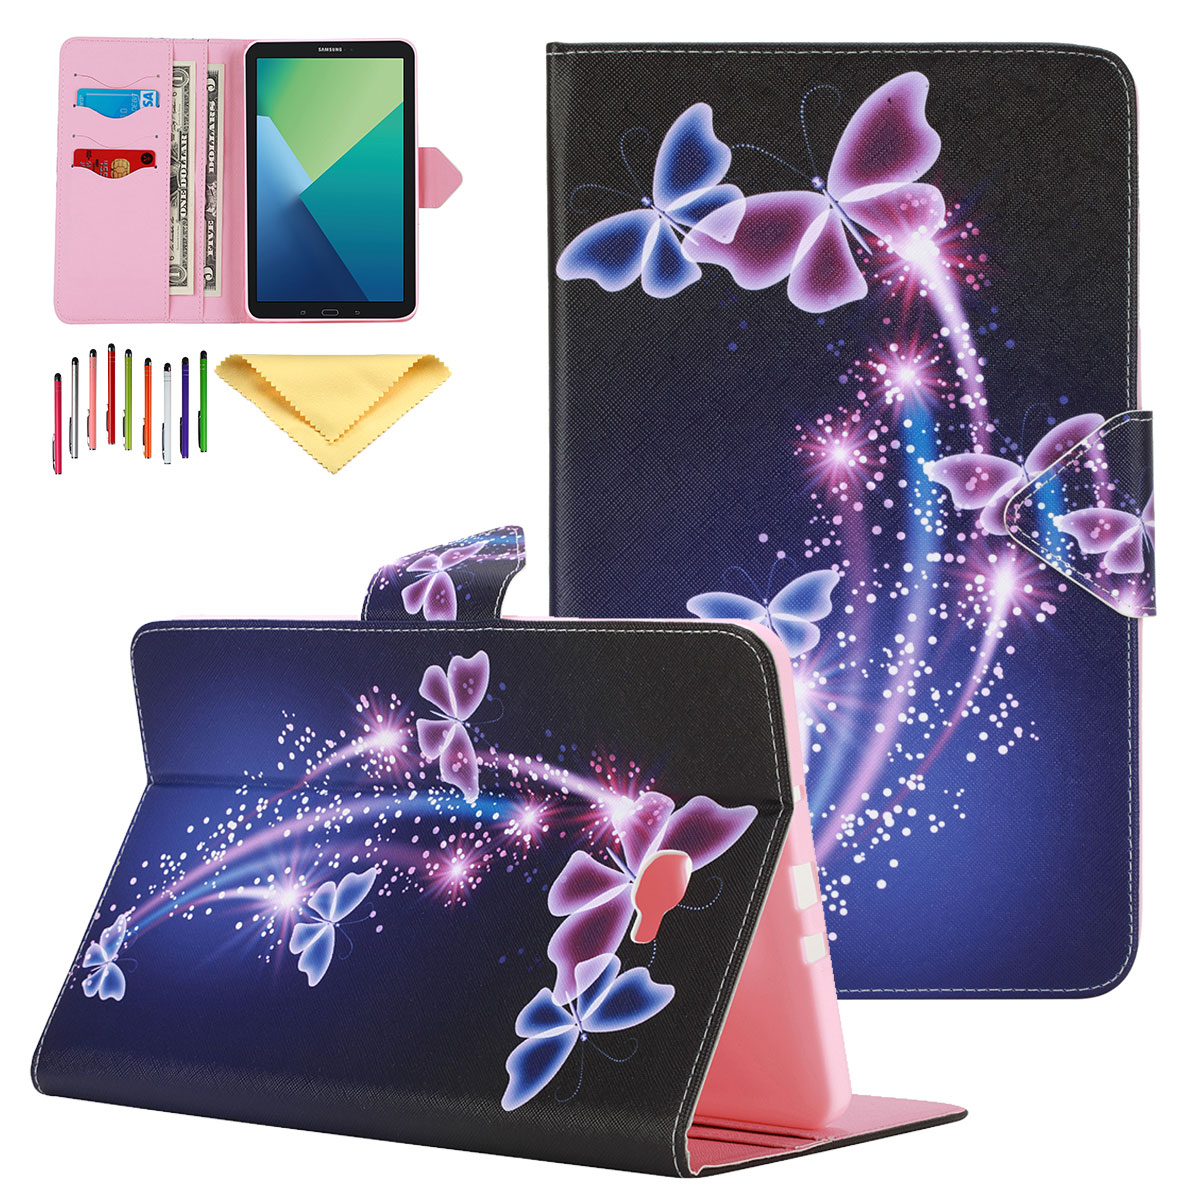 Goodest Slim Shell Case for Samsung Galaxy Tab A 10.1 with S Pen, Ultra Lightweight Protective Stand Smart Cover with Auto Sleep/Wake for Galaxy Tab A with S Pen 10.1 inch SM-P580/P585, Butterflies